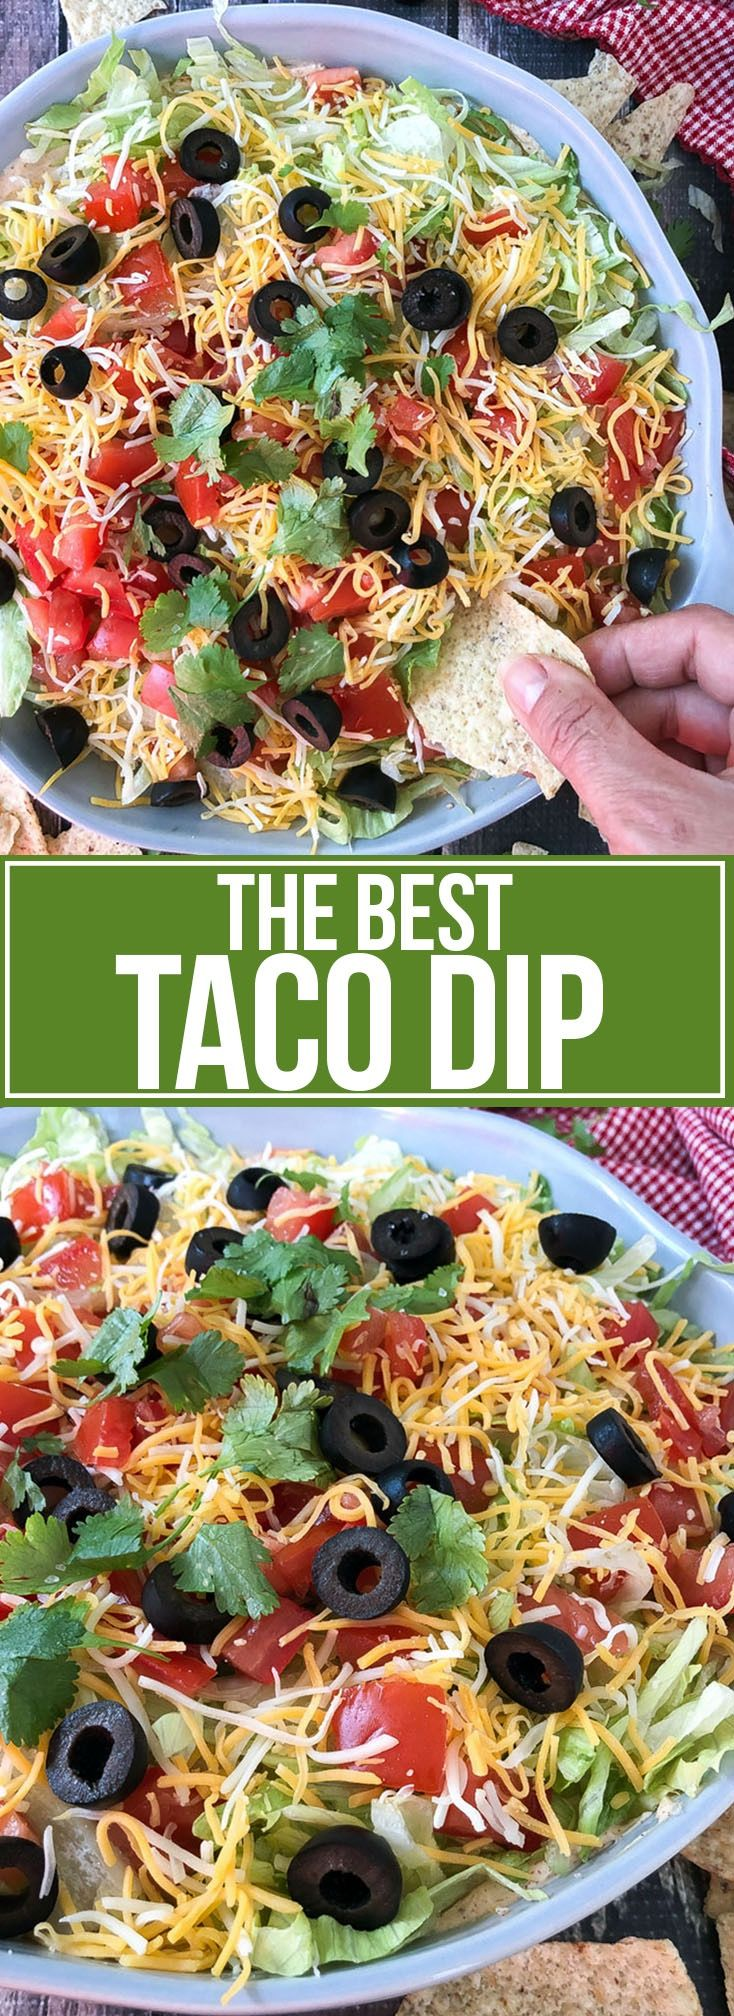 The Best Taco Dip - Mother Thyme